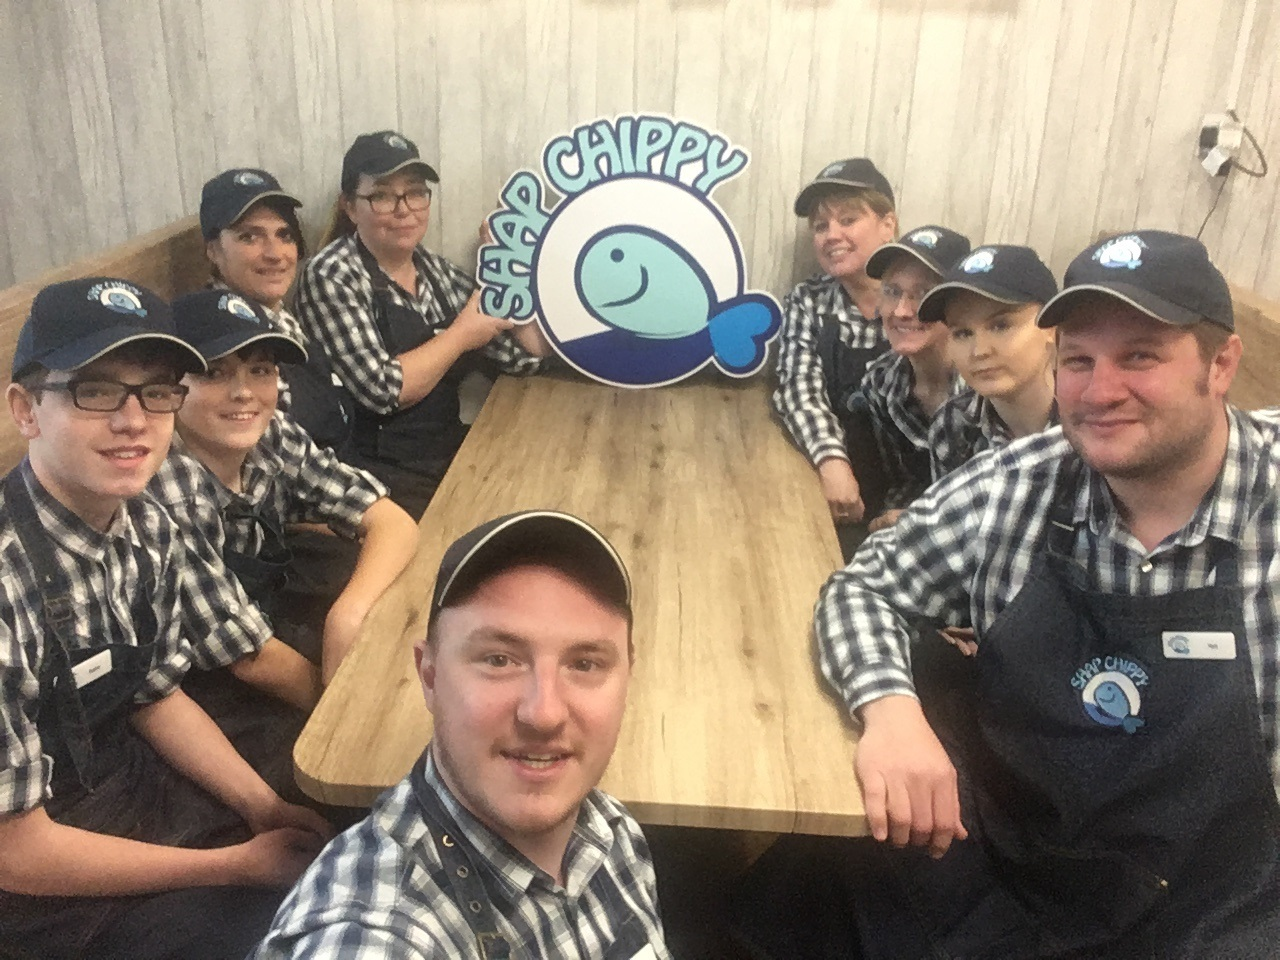 The Shap Chippy team